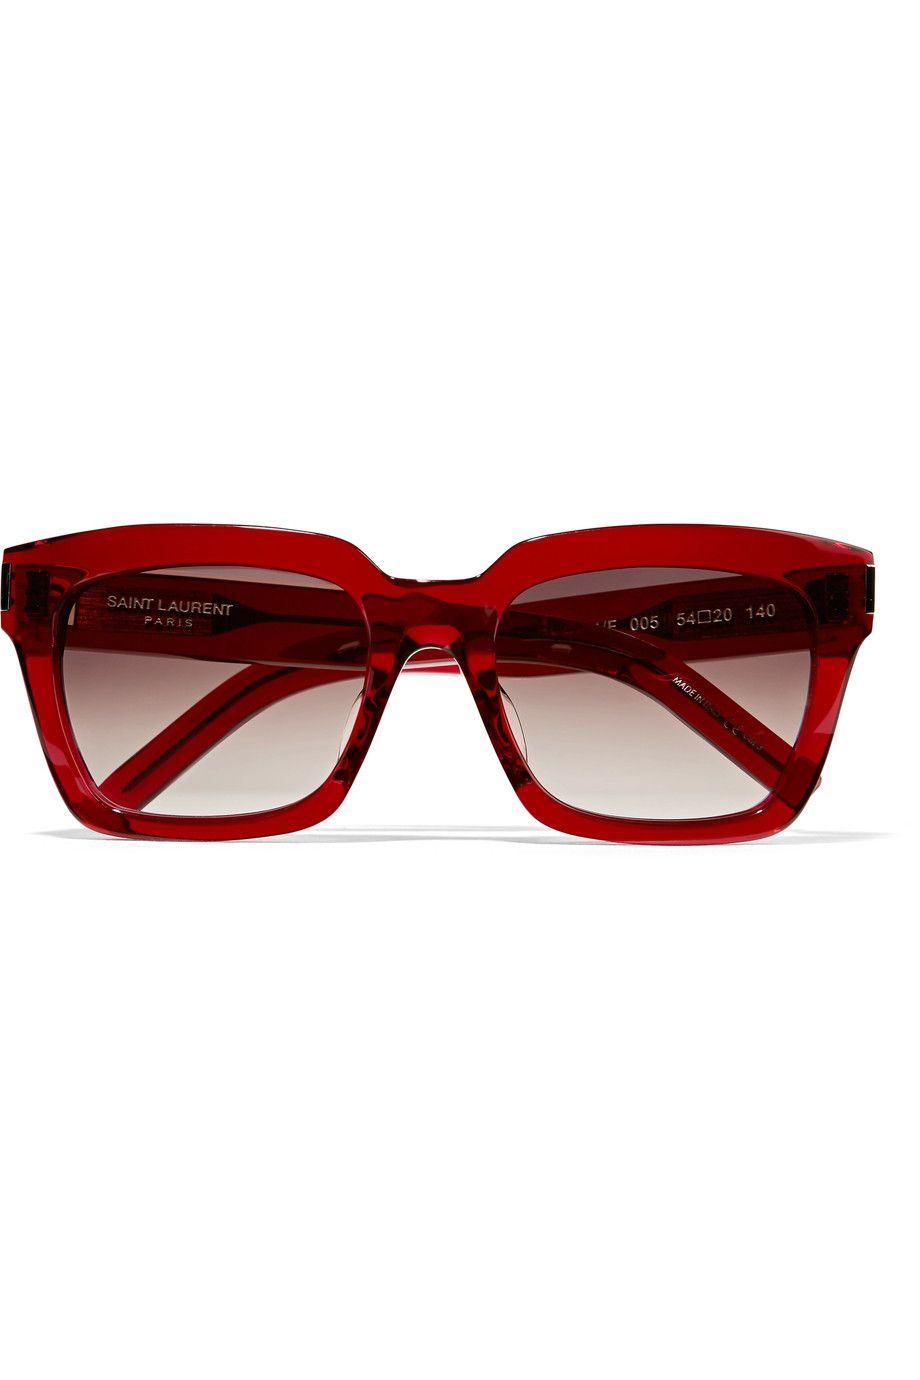 4a99276b1a4 Shop on-sale Saint Laurent Bold 1 f square-frame acetate sunglasses. Browse  other discount designer Bold 1 f square-frame acetate sunglasses   more on  The ...